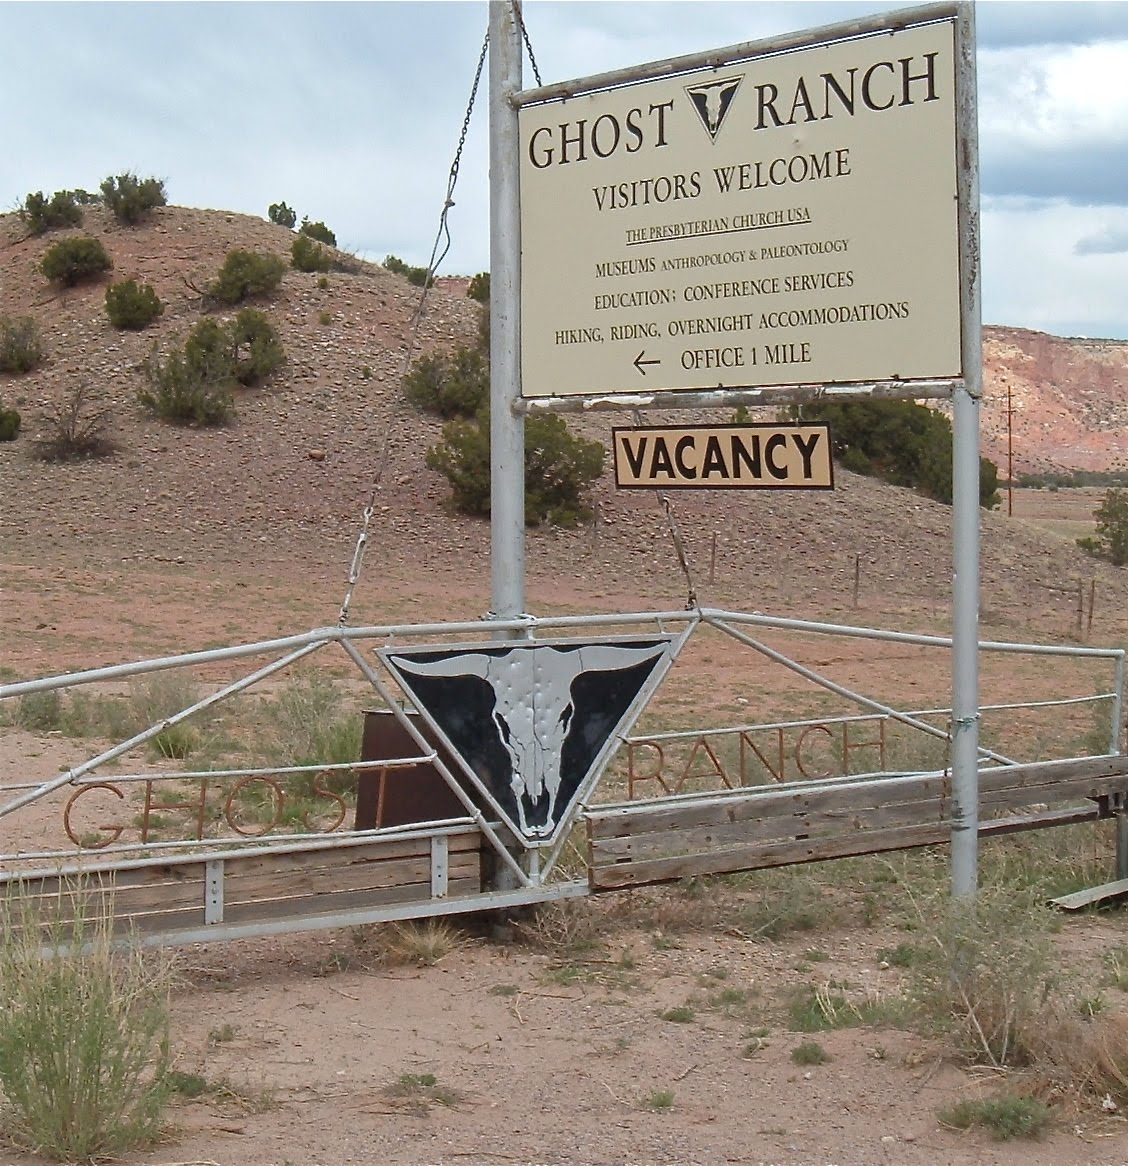 Two Graces Taos: Abiquiu, Ghost Ranch Trails & The Land Of